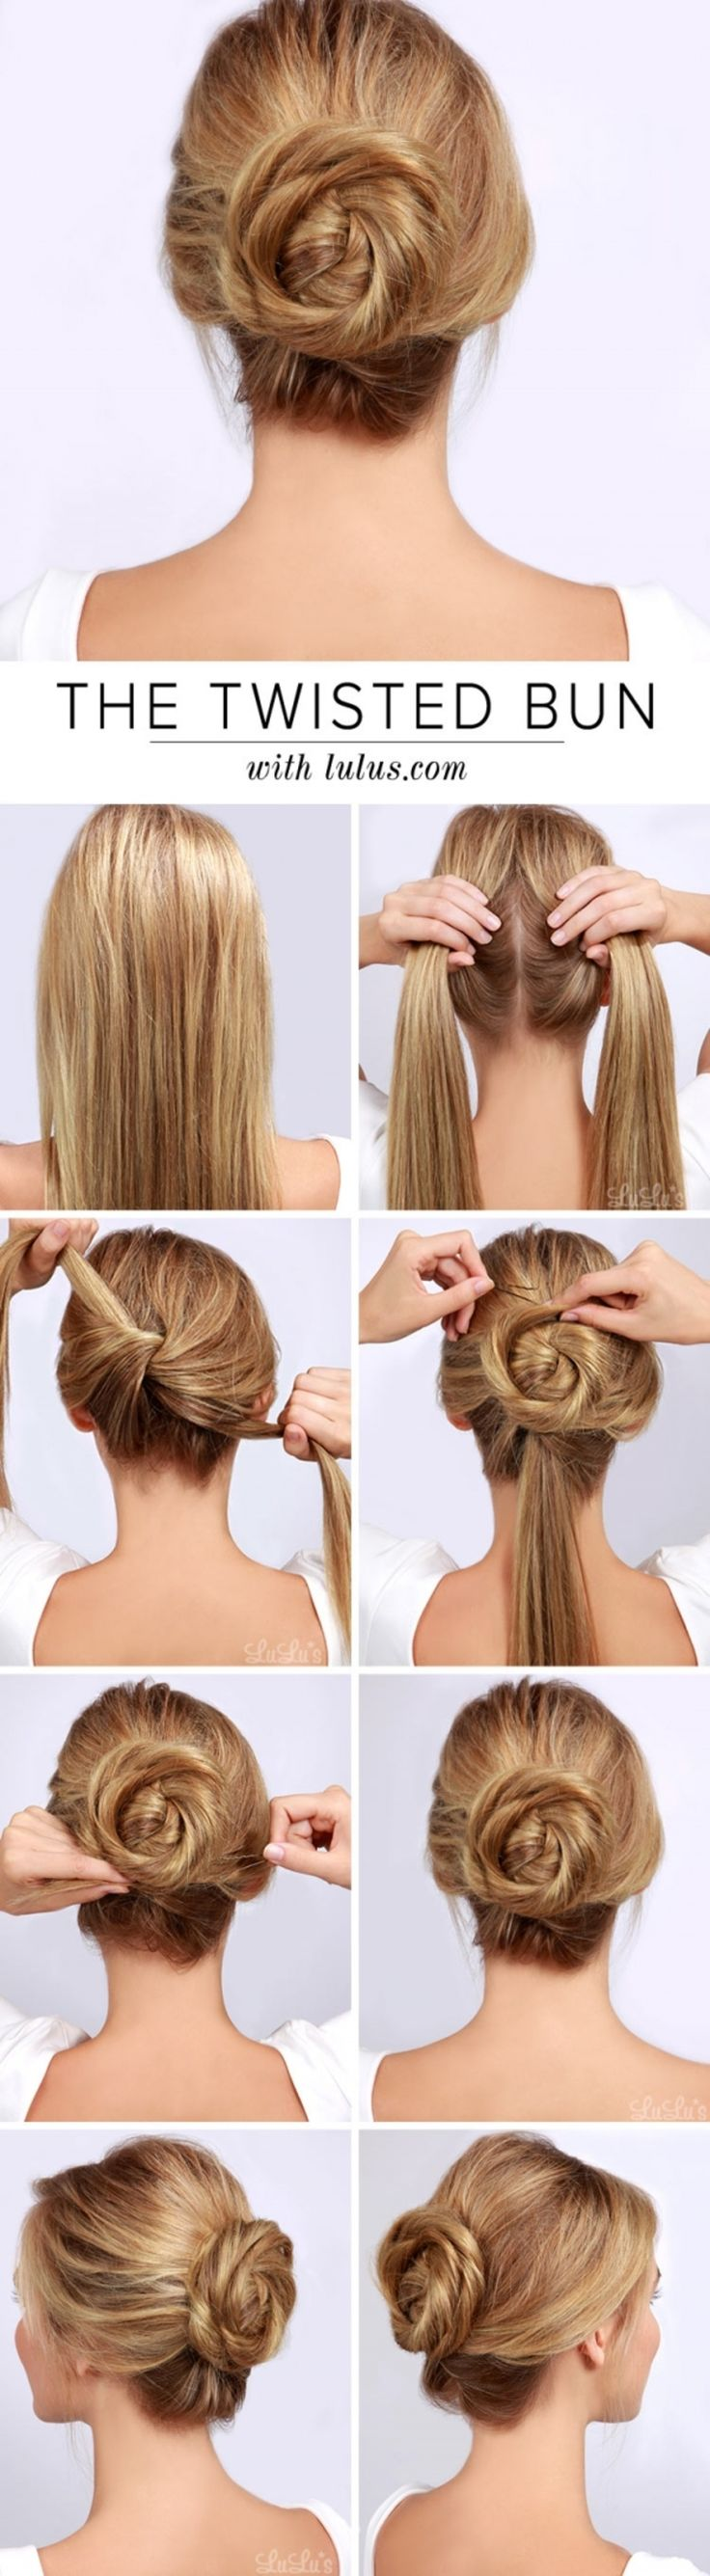 74 best hairstyles i luv images on Pinterest